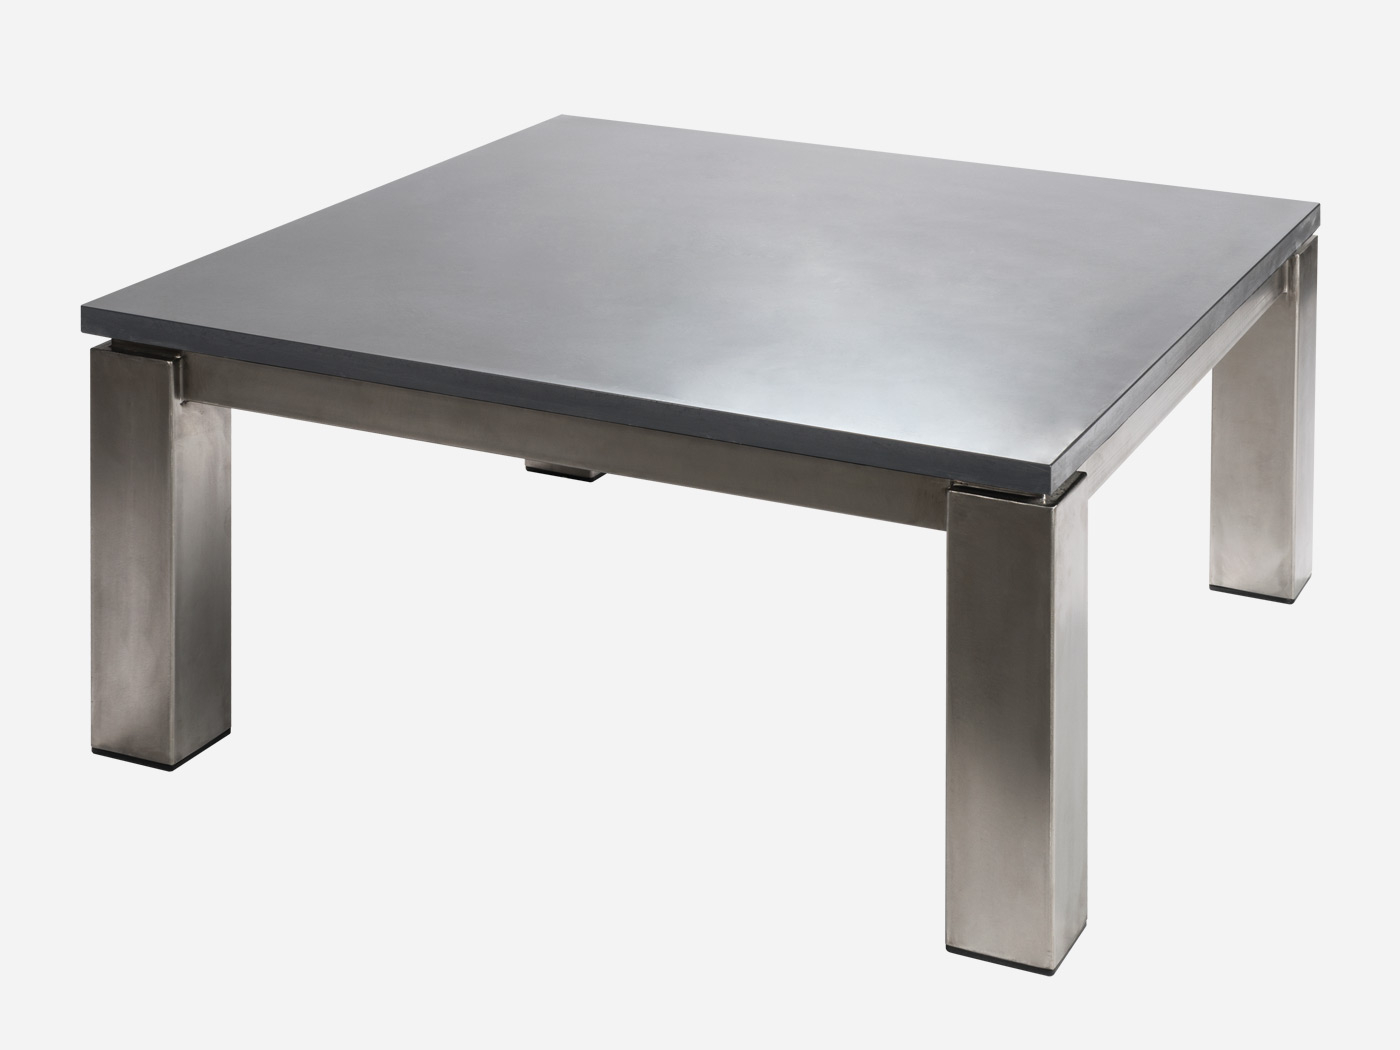 wundersch nen pied table basse inox id es de conception de table basse. Black Bedroom Furniture Sets. Home Design Ideas